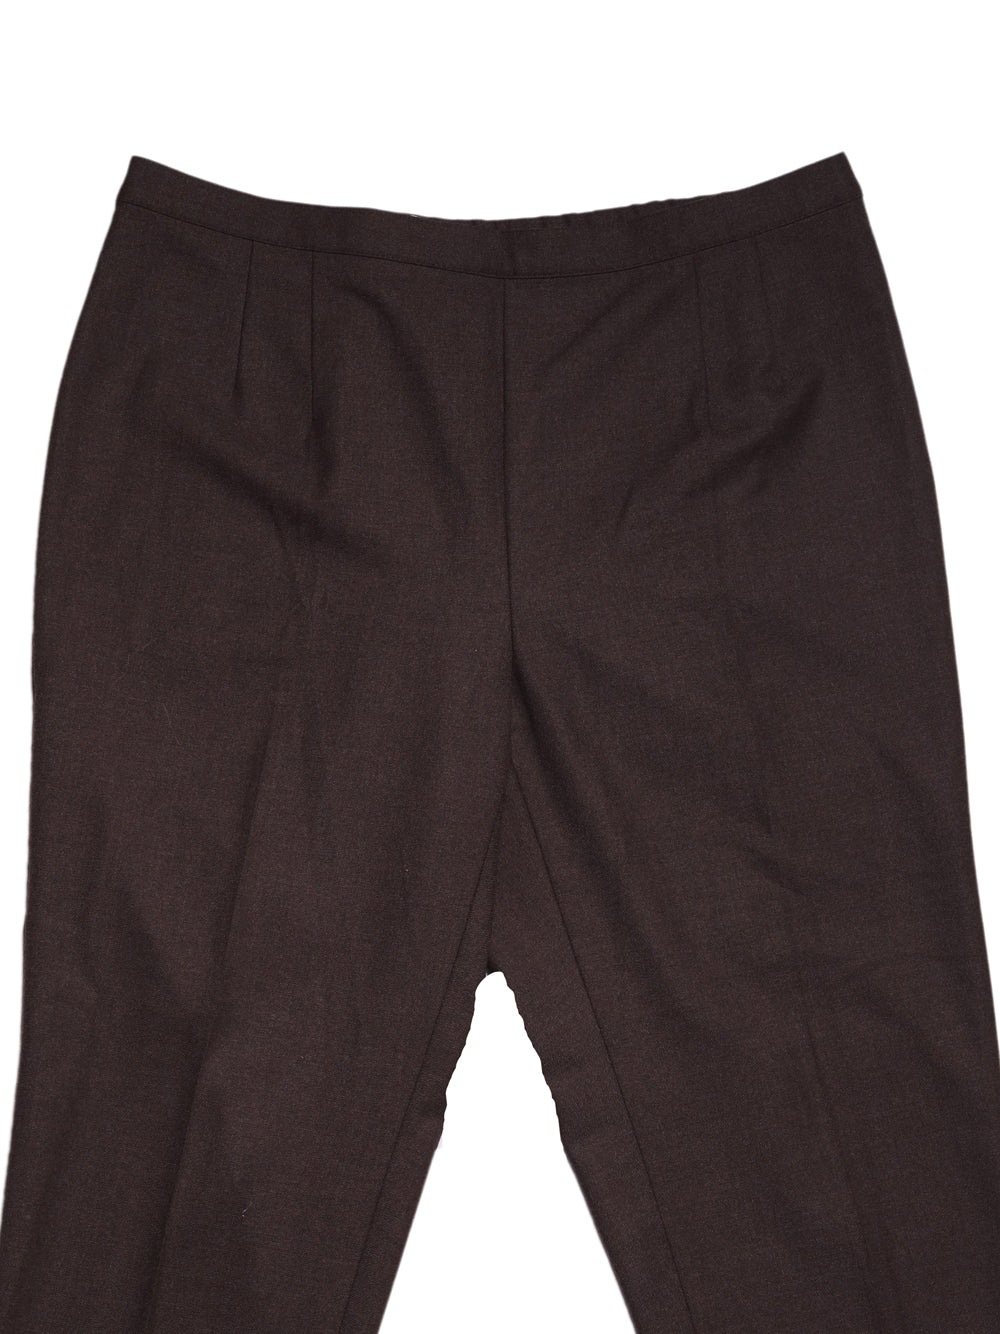 Detail photo of Preloved Elena Mirò Brown Man's trousers - size 38/M